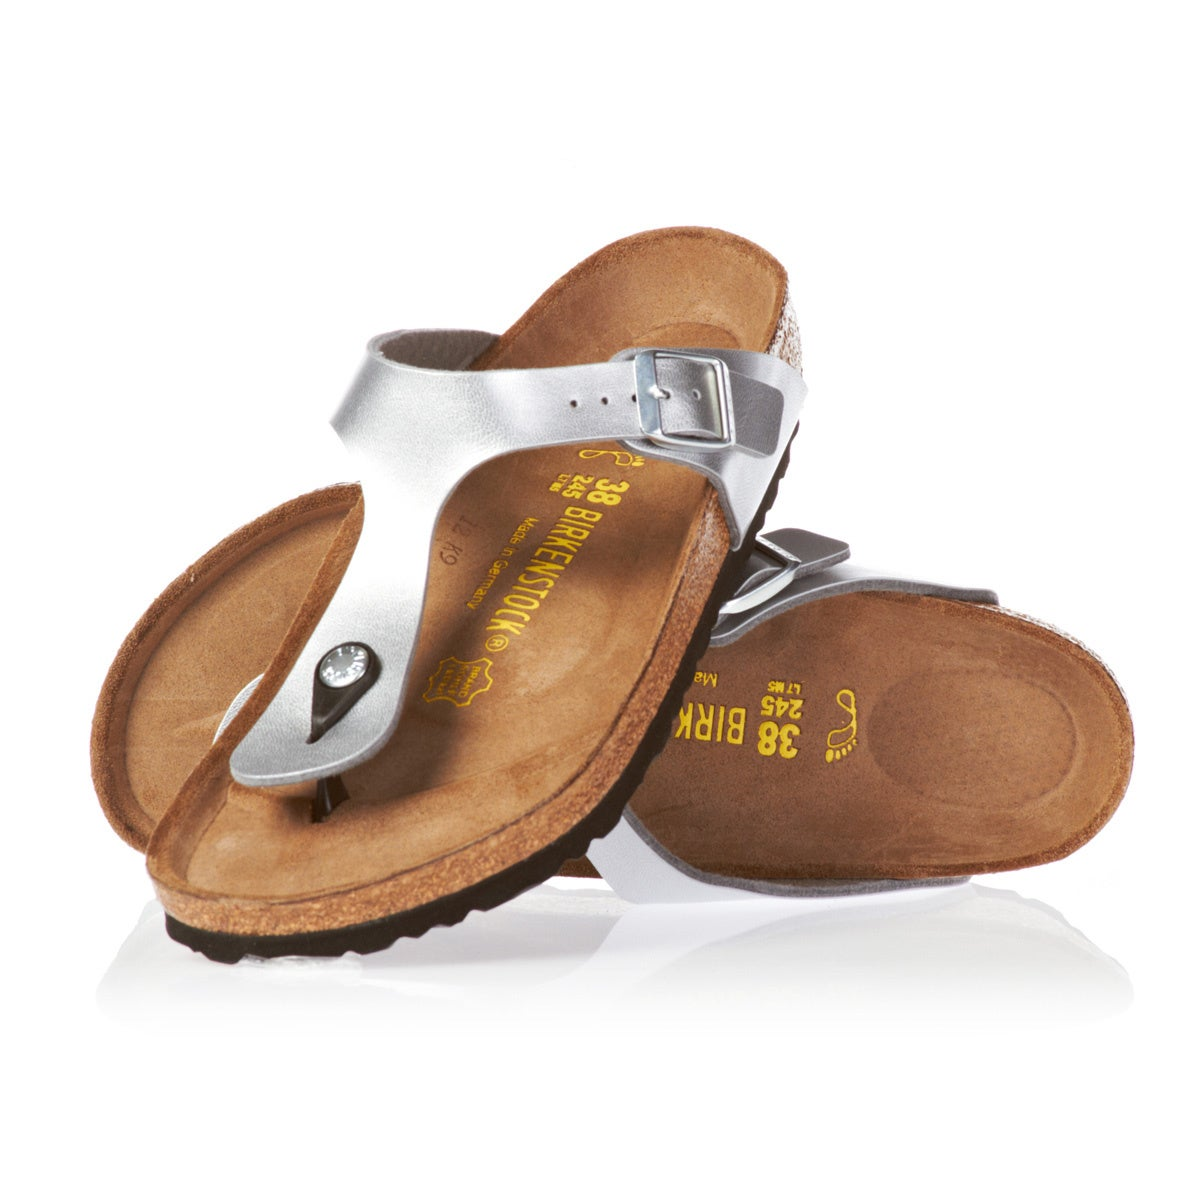 new product b0520 83eb2 Birkenstock Gizeh Birko Flor Sandals | Free Delivery* on All Orders